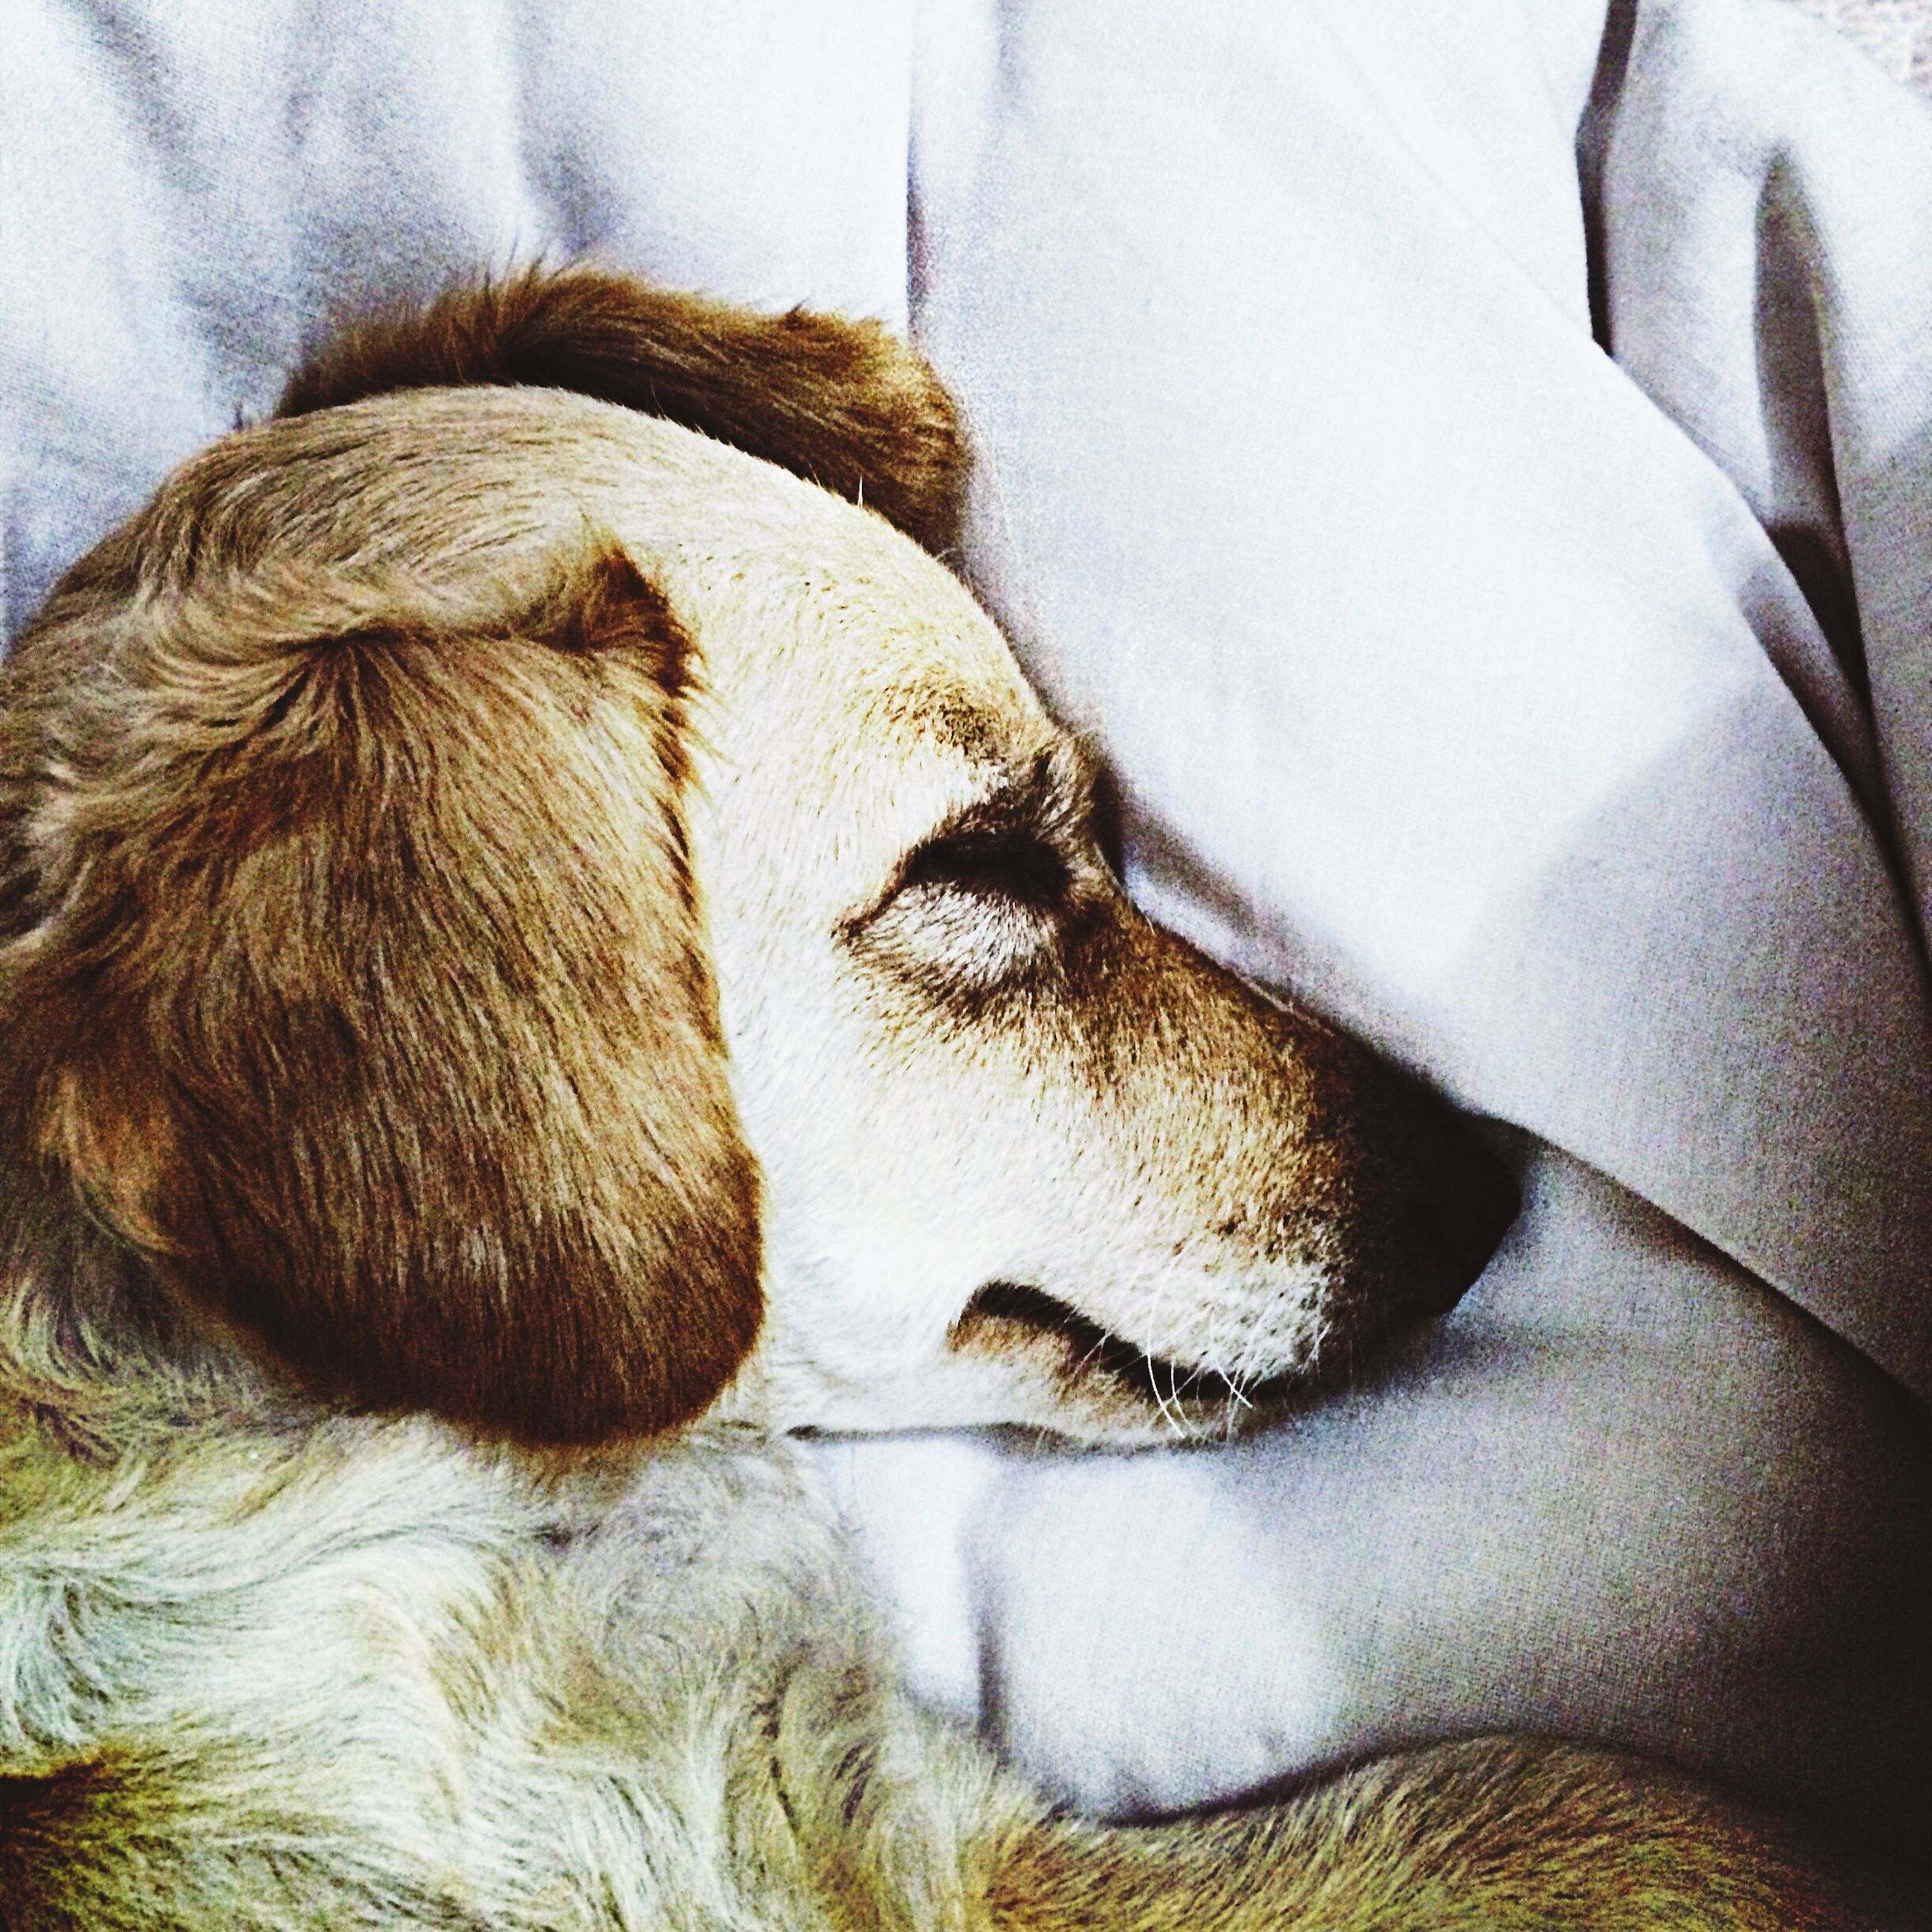 domestic animals, mammal, animal themes, one animal, pets, dog, relaxation, resting, sleeping, indoors, animal head, lying down, close-up, animal body part, eyes closed, no people, bed, animal hair, relaxing, day